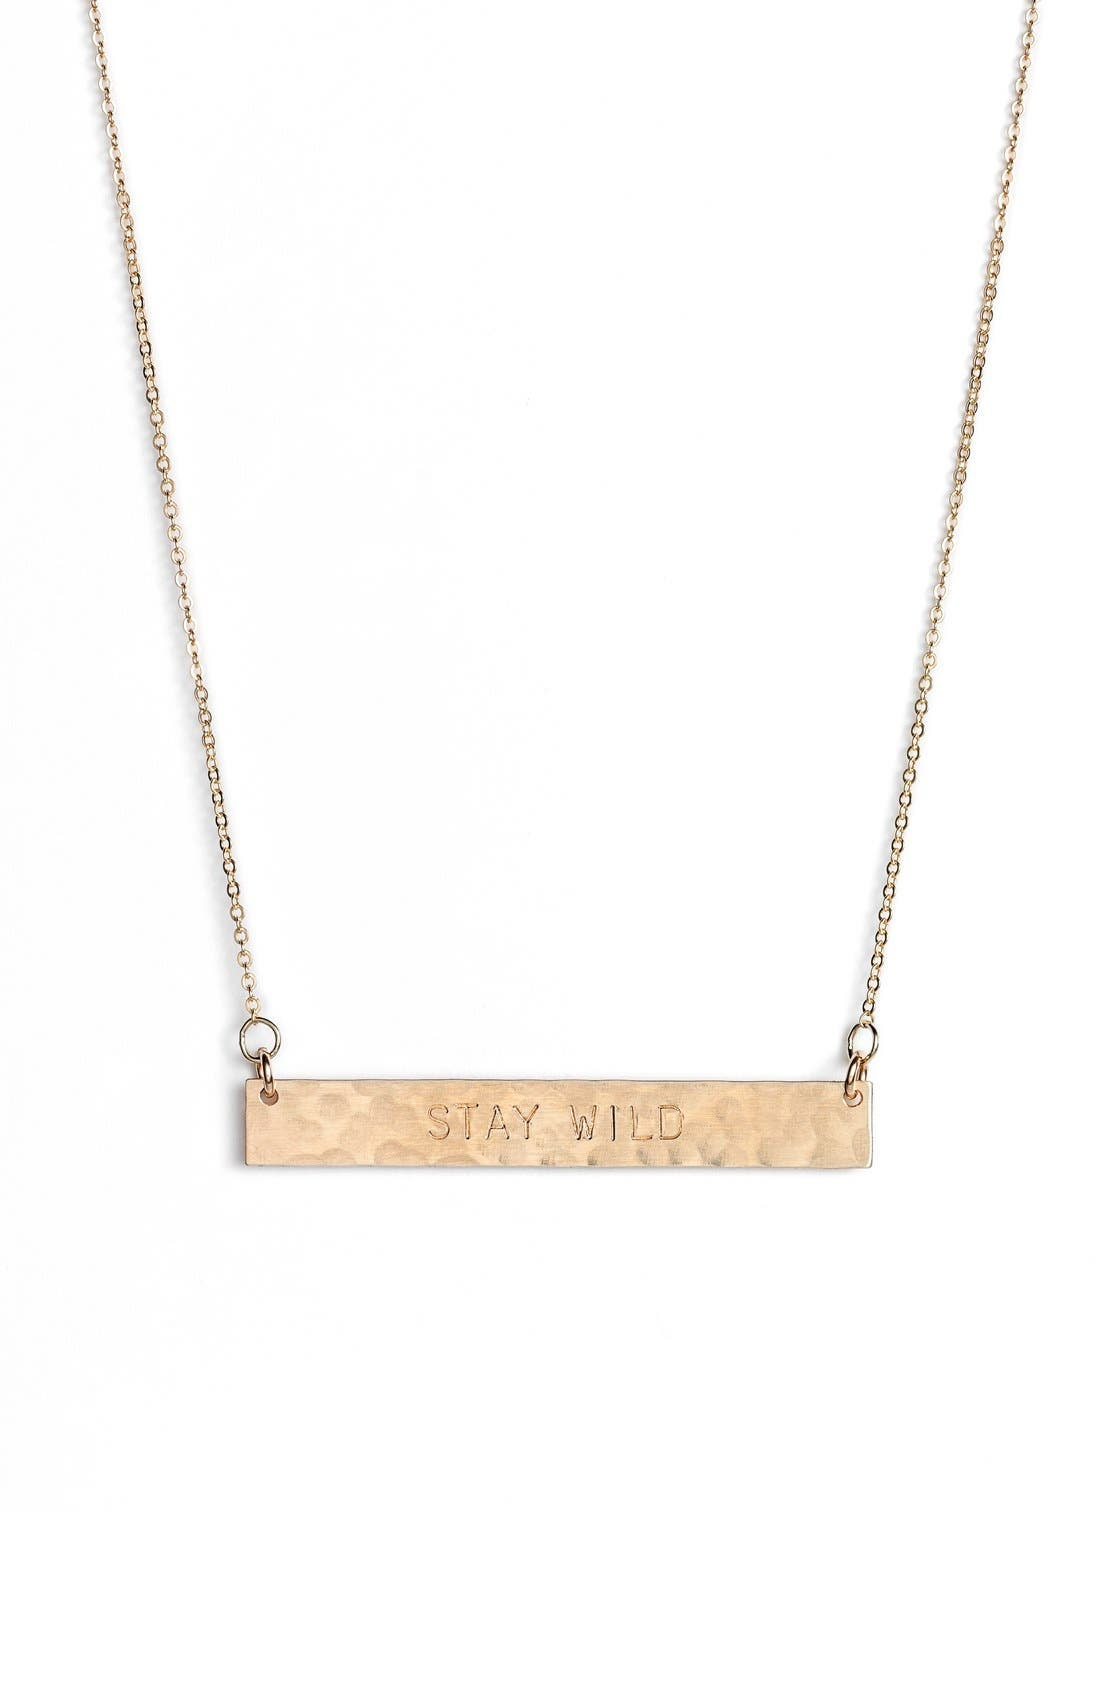 Nashelle 14k-Gold Fill Stamped Bar Pendant Necklace